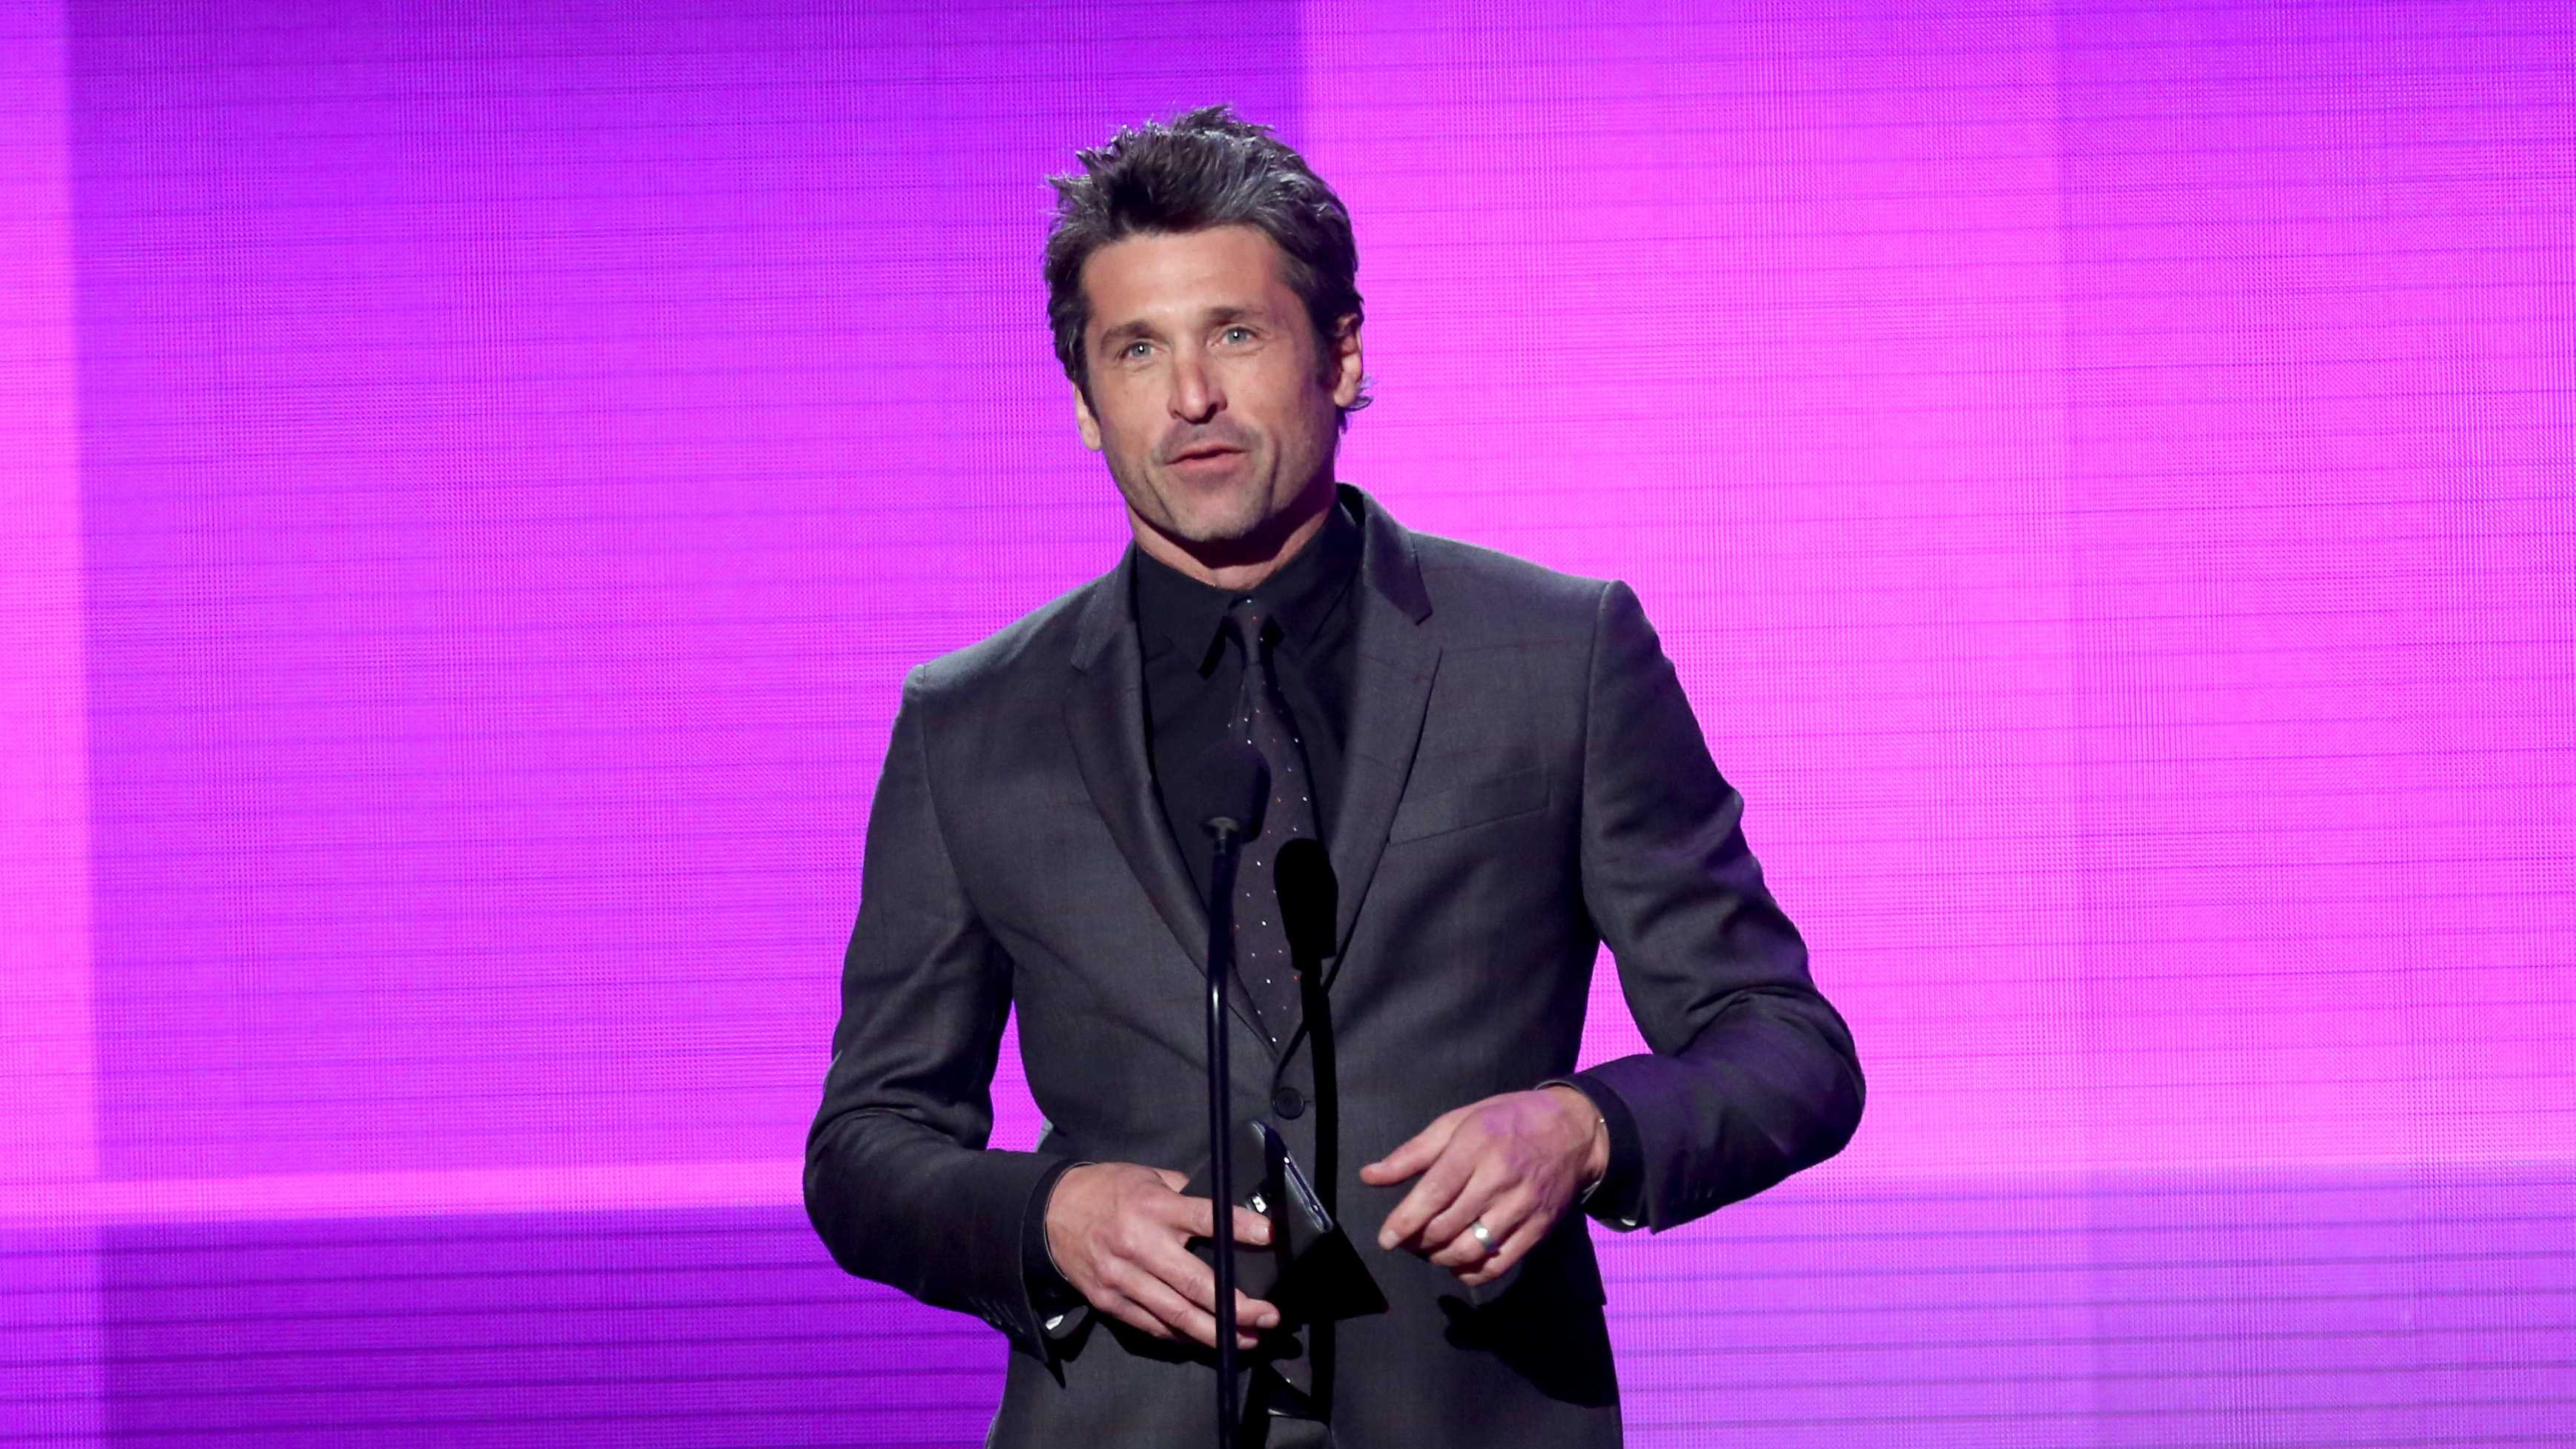 Dempsey's mother, Amanda, was diagnosed with ovarian cancer. On March 24, 2014, she died in Maine. Dempsey helped start the Patrick Dempsey Center at Central Maine Medical Center in Lewiston.